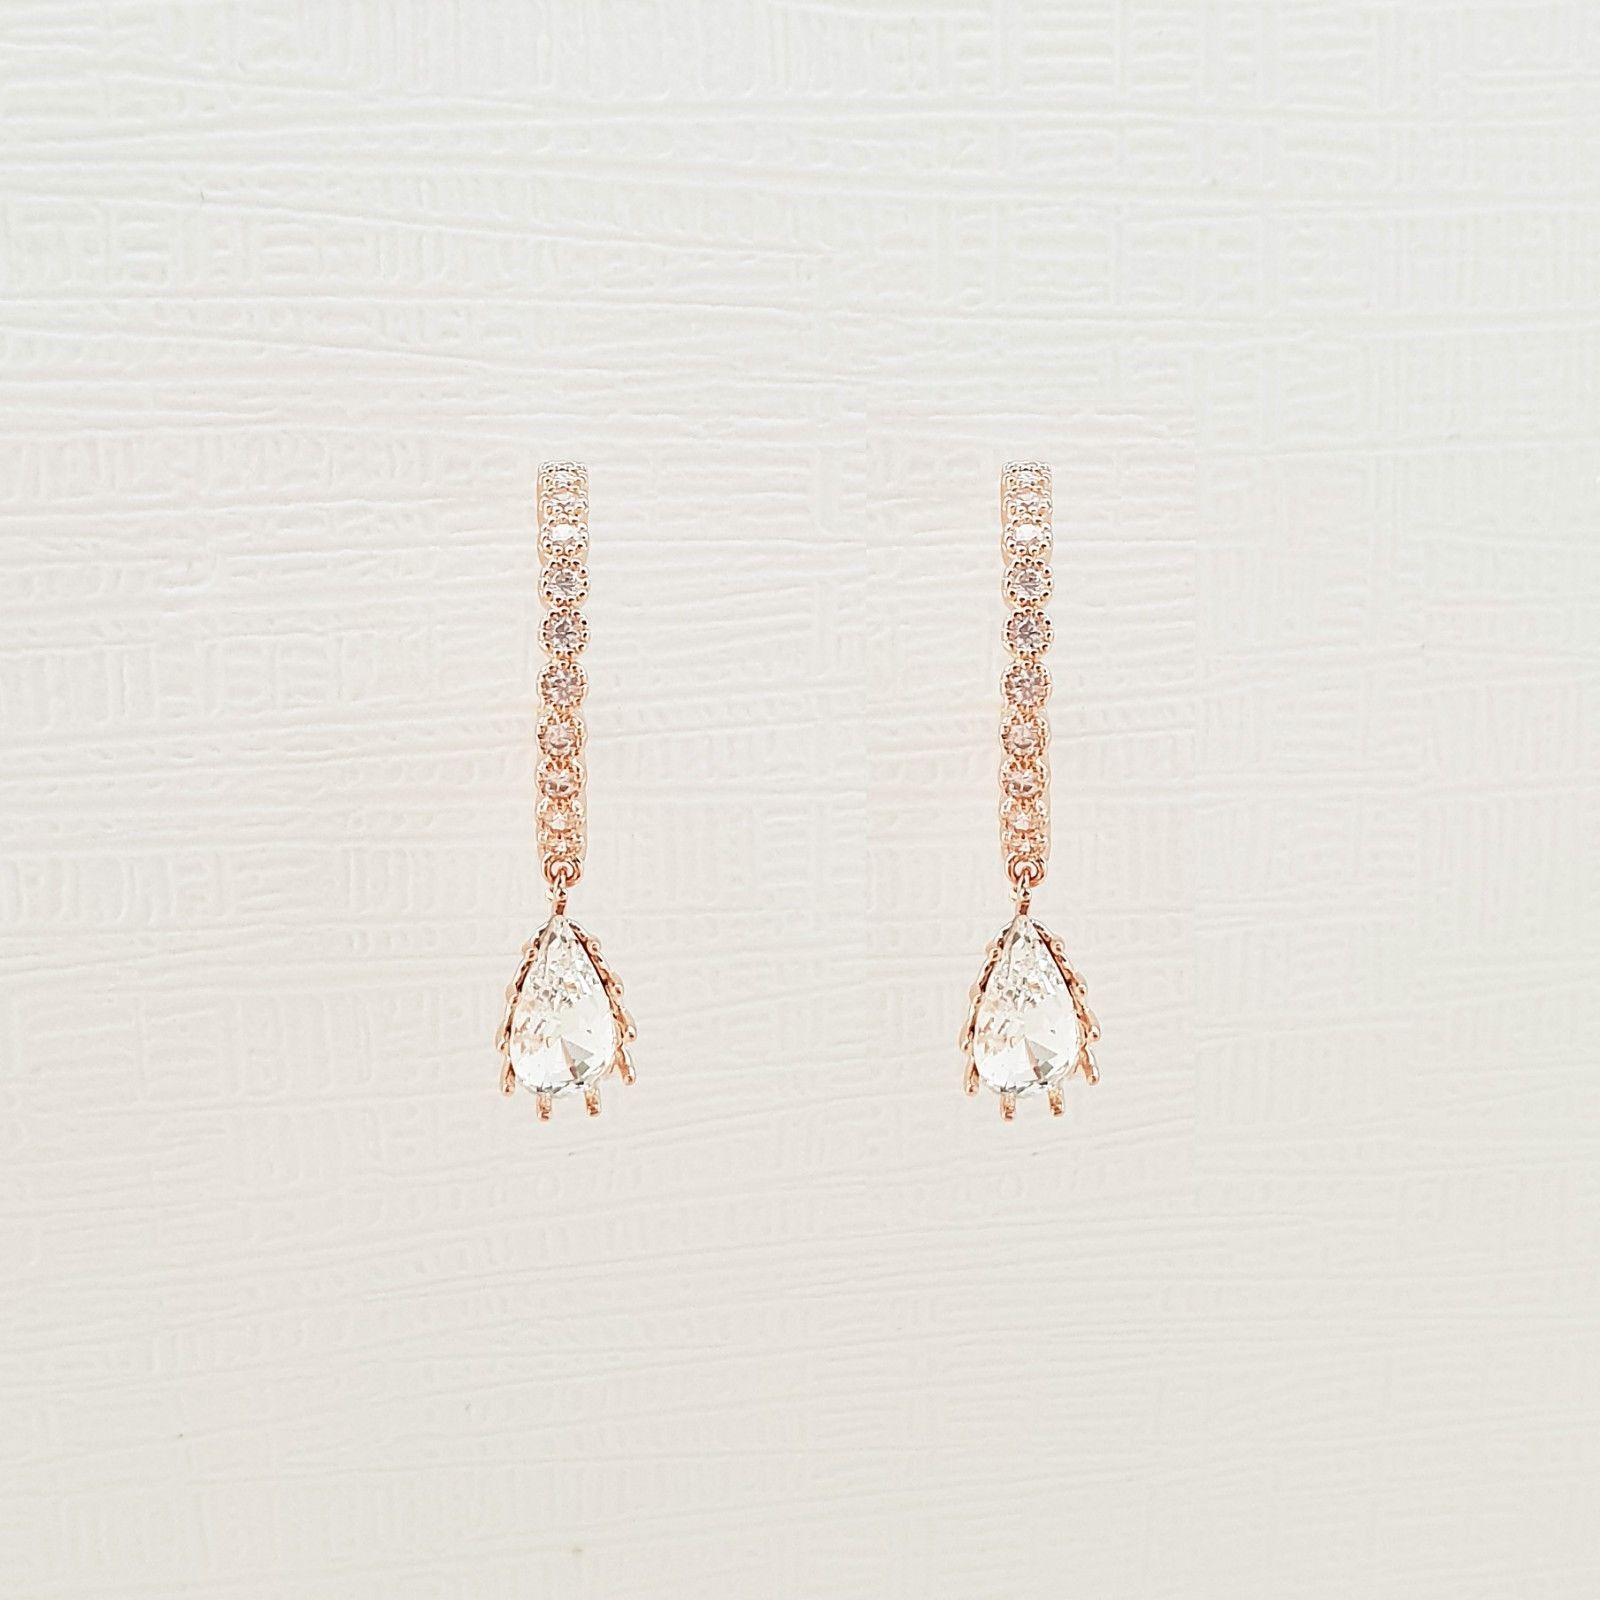 Hoop Water Drop Made With Swarovski Crystal Dangle Earrings Rose Gold Tone Pink image 2